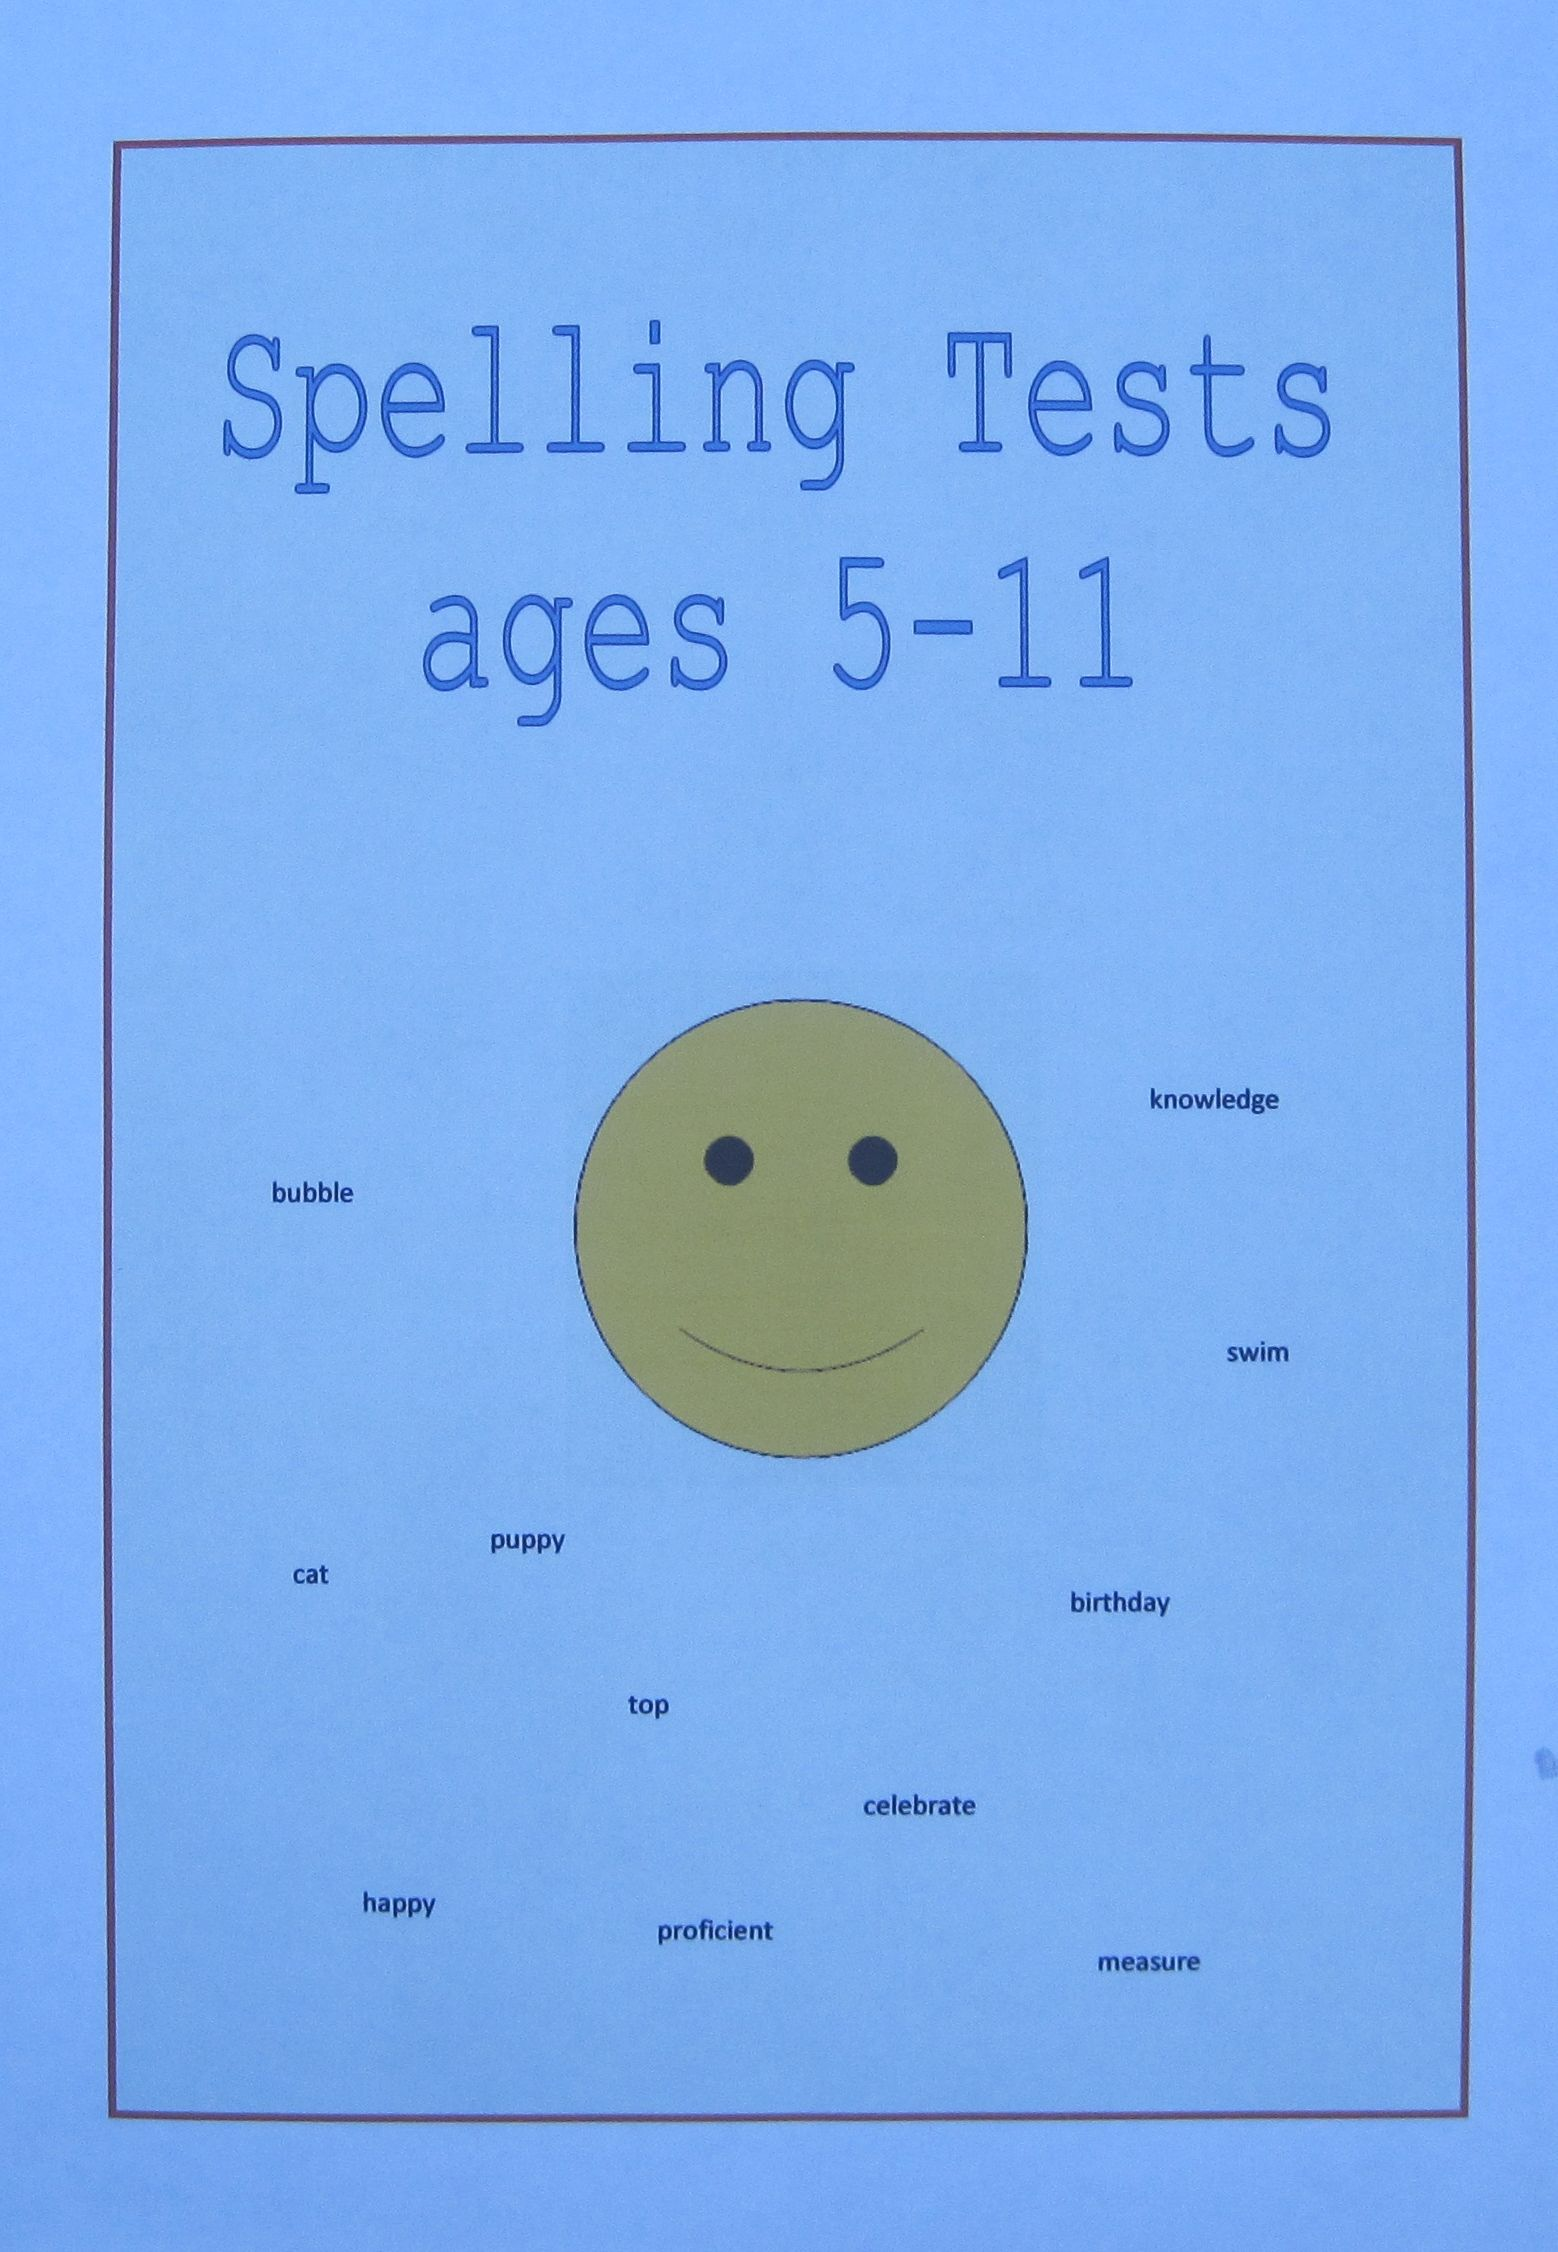 37 Educational Spelling Games For 7 Year Olds